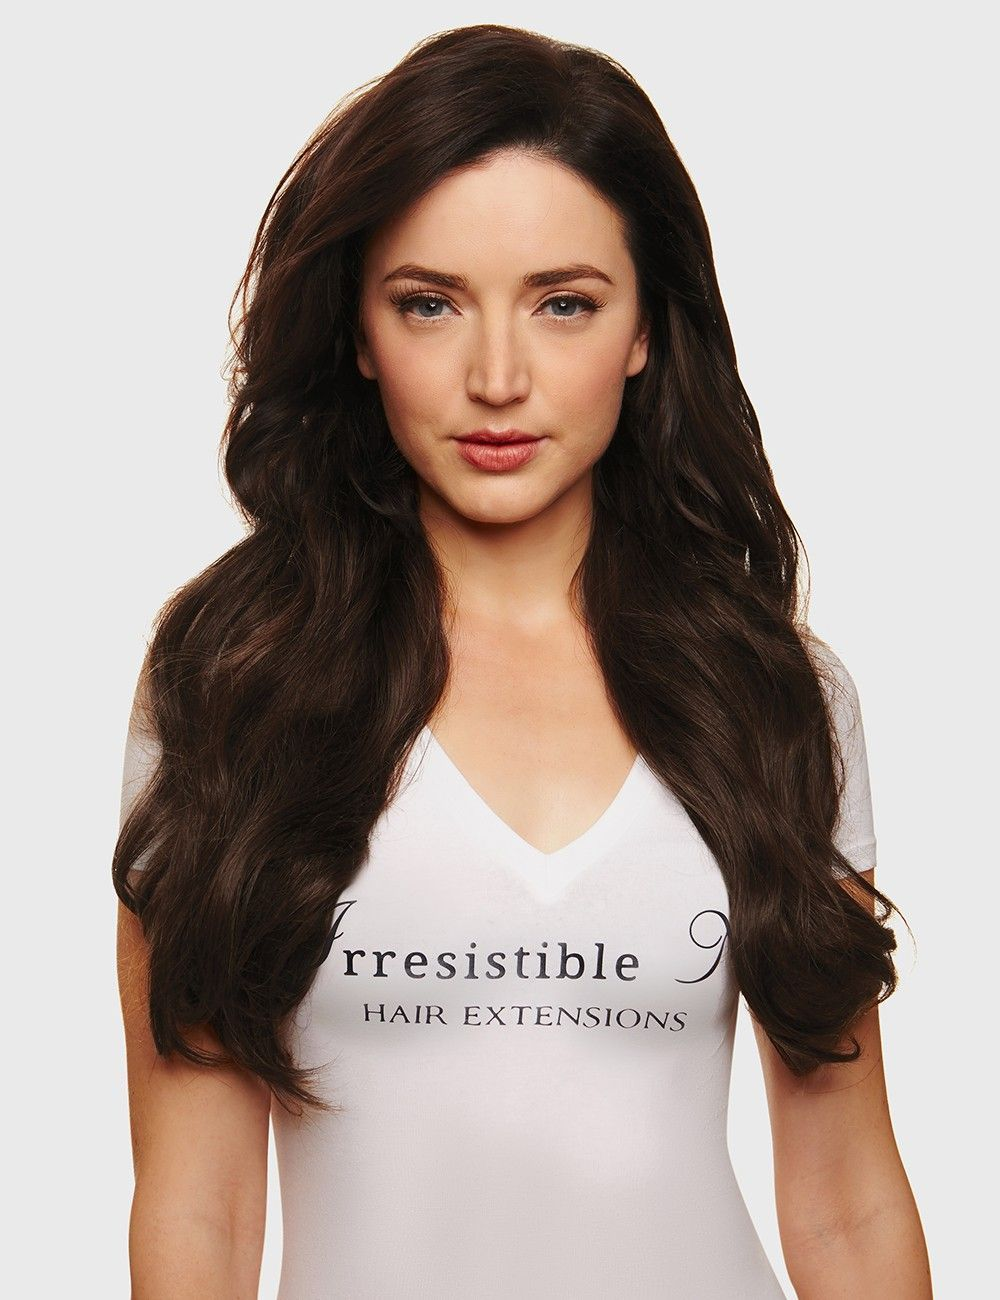 Human hair extensions real hair extensions irresistible me